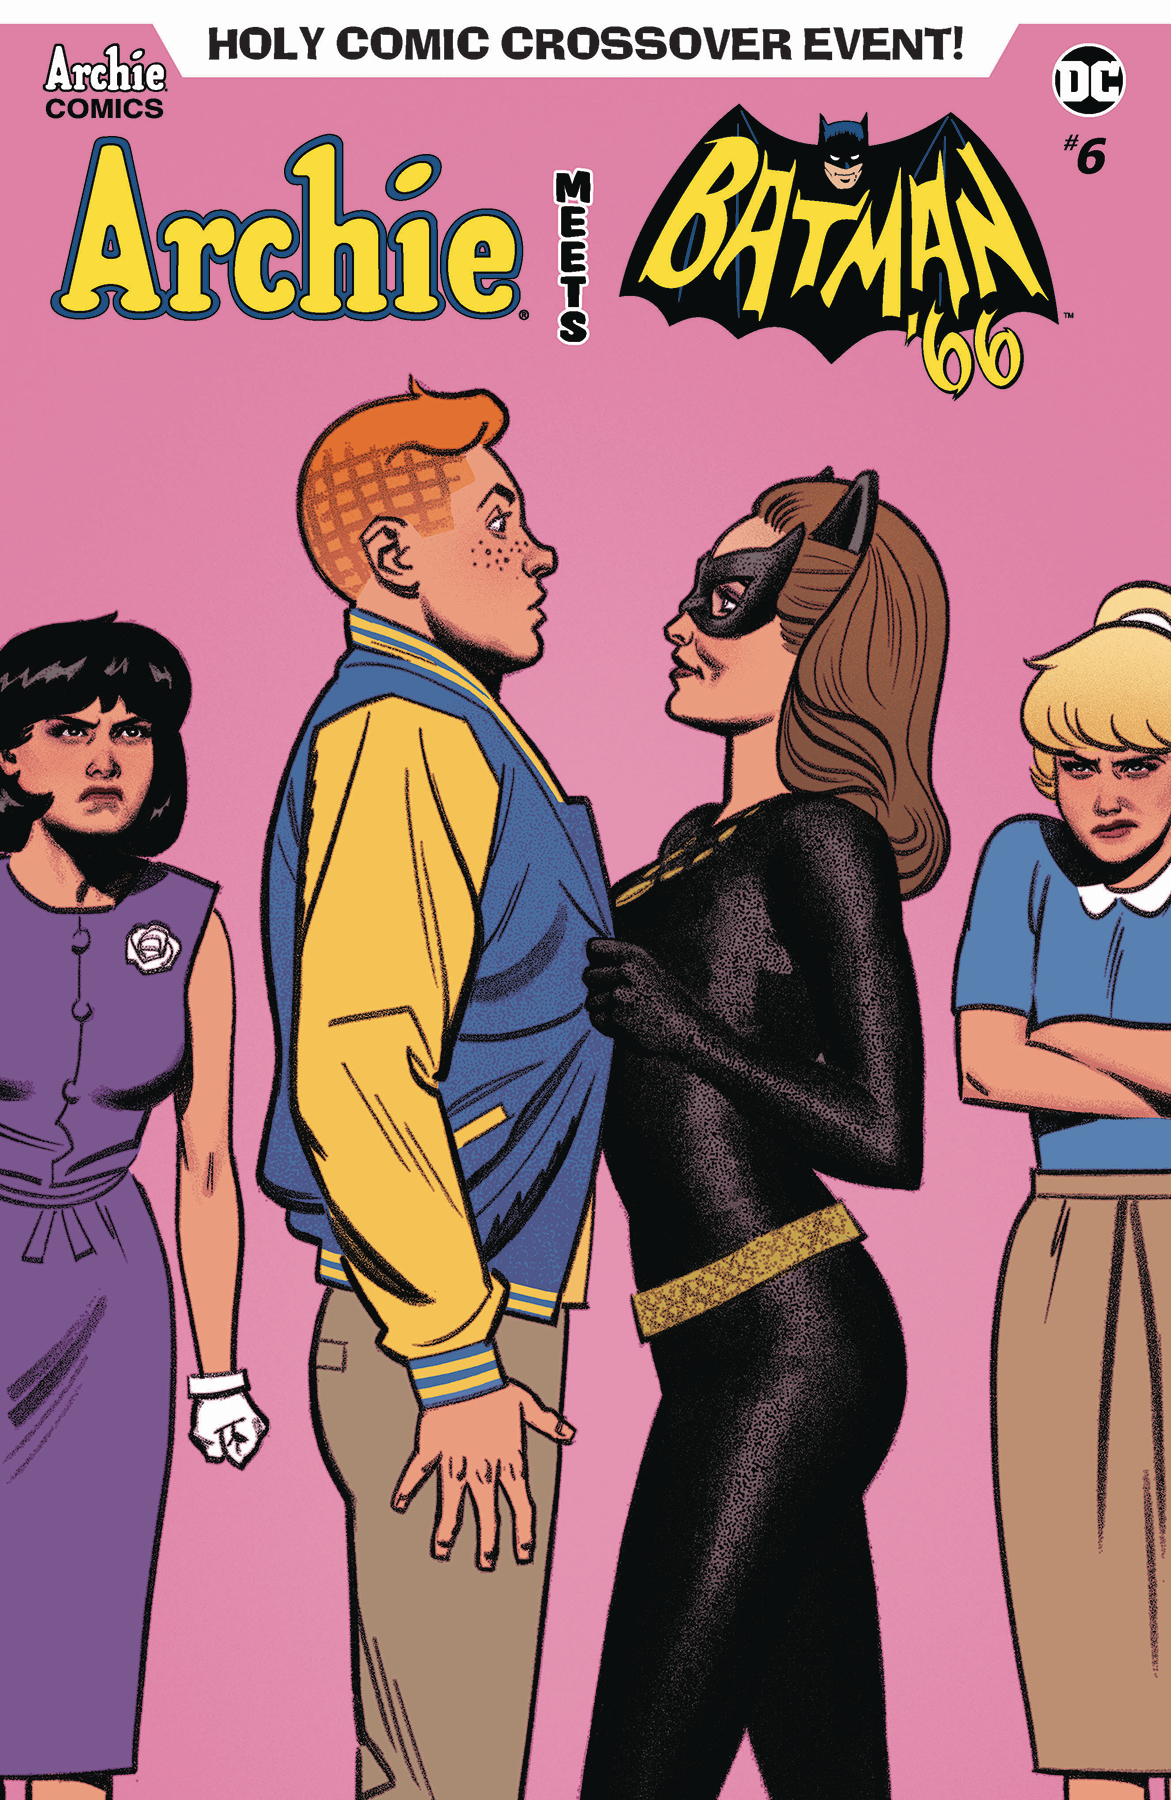 ARCHIE MEETS BATMAN 66 #6 CVR F SMALLWOOD